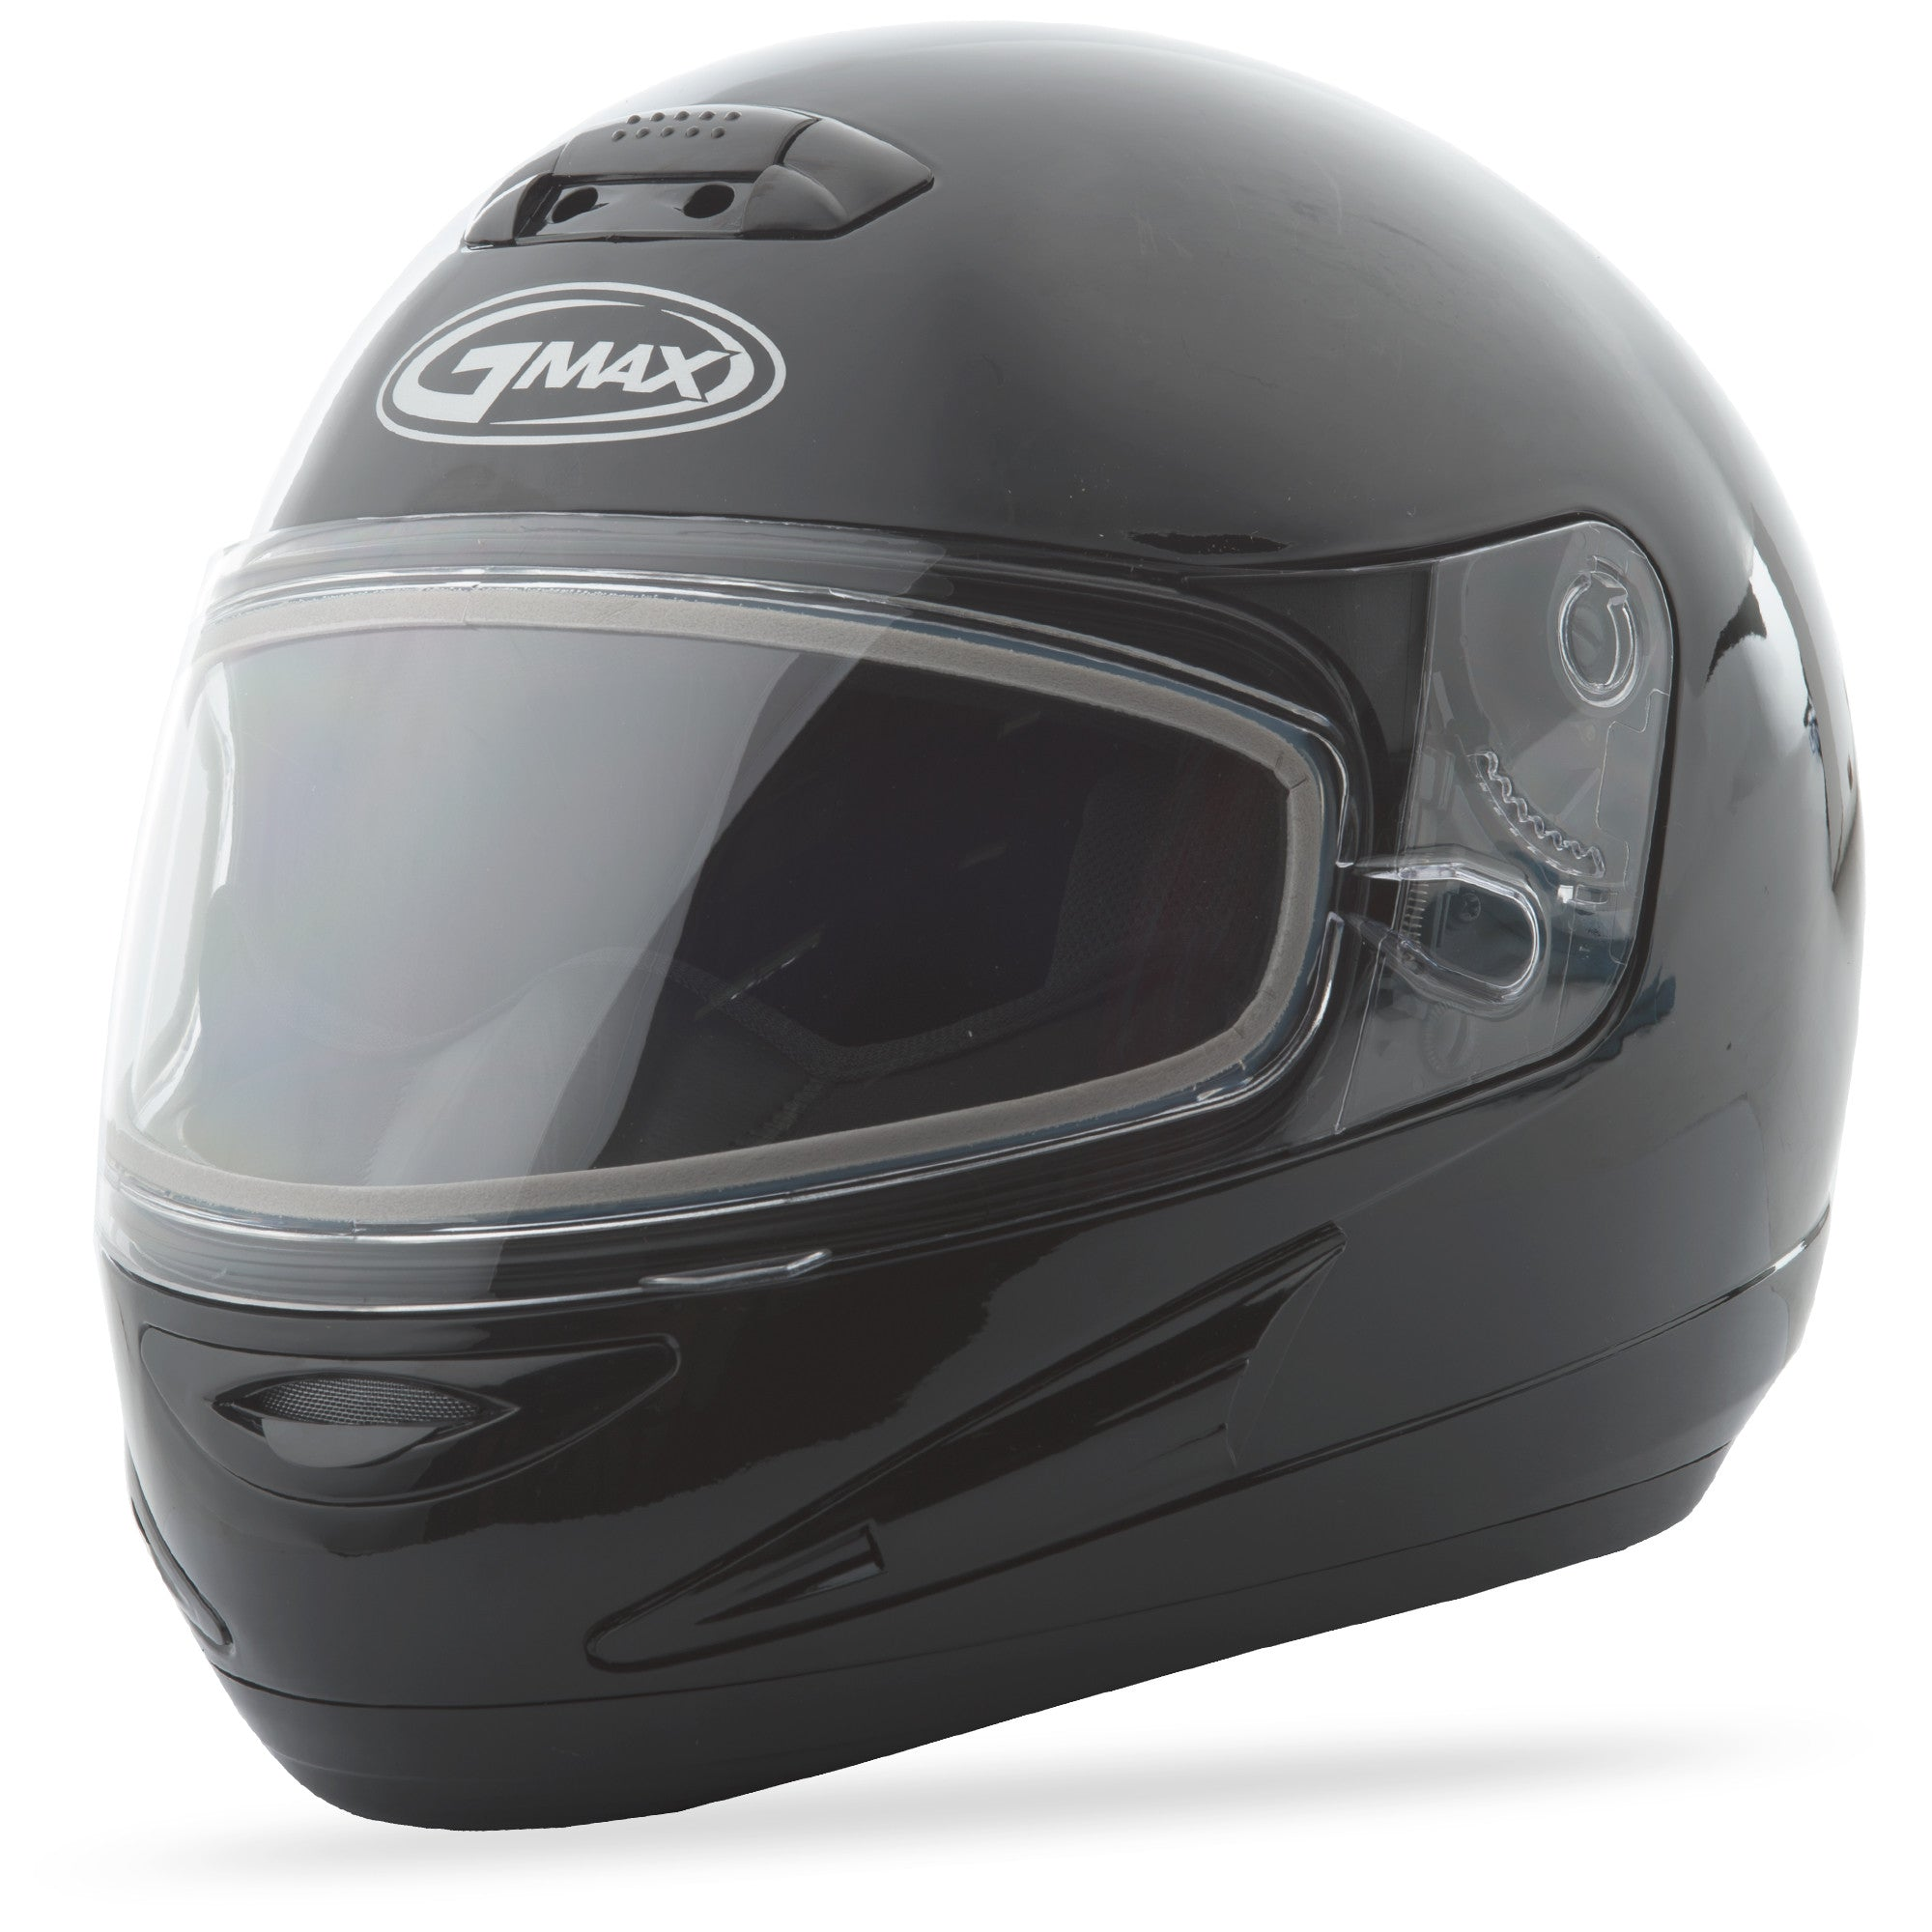 Gm38S Helmet Black L